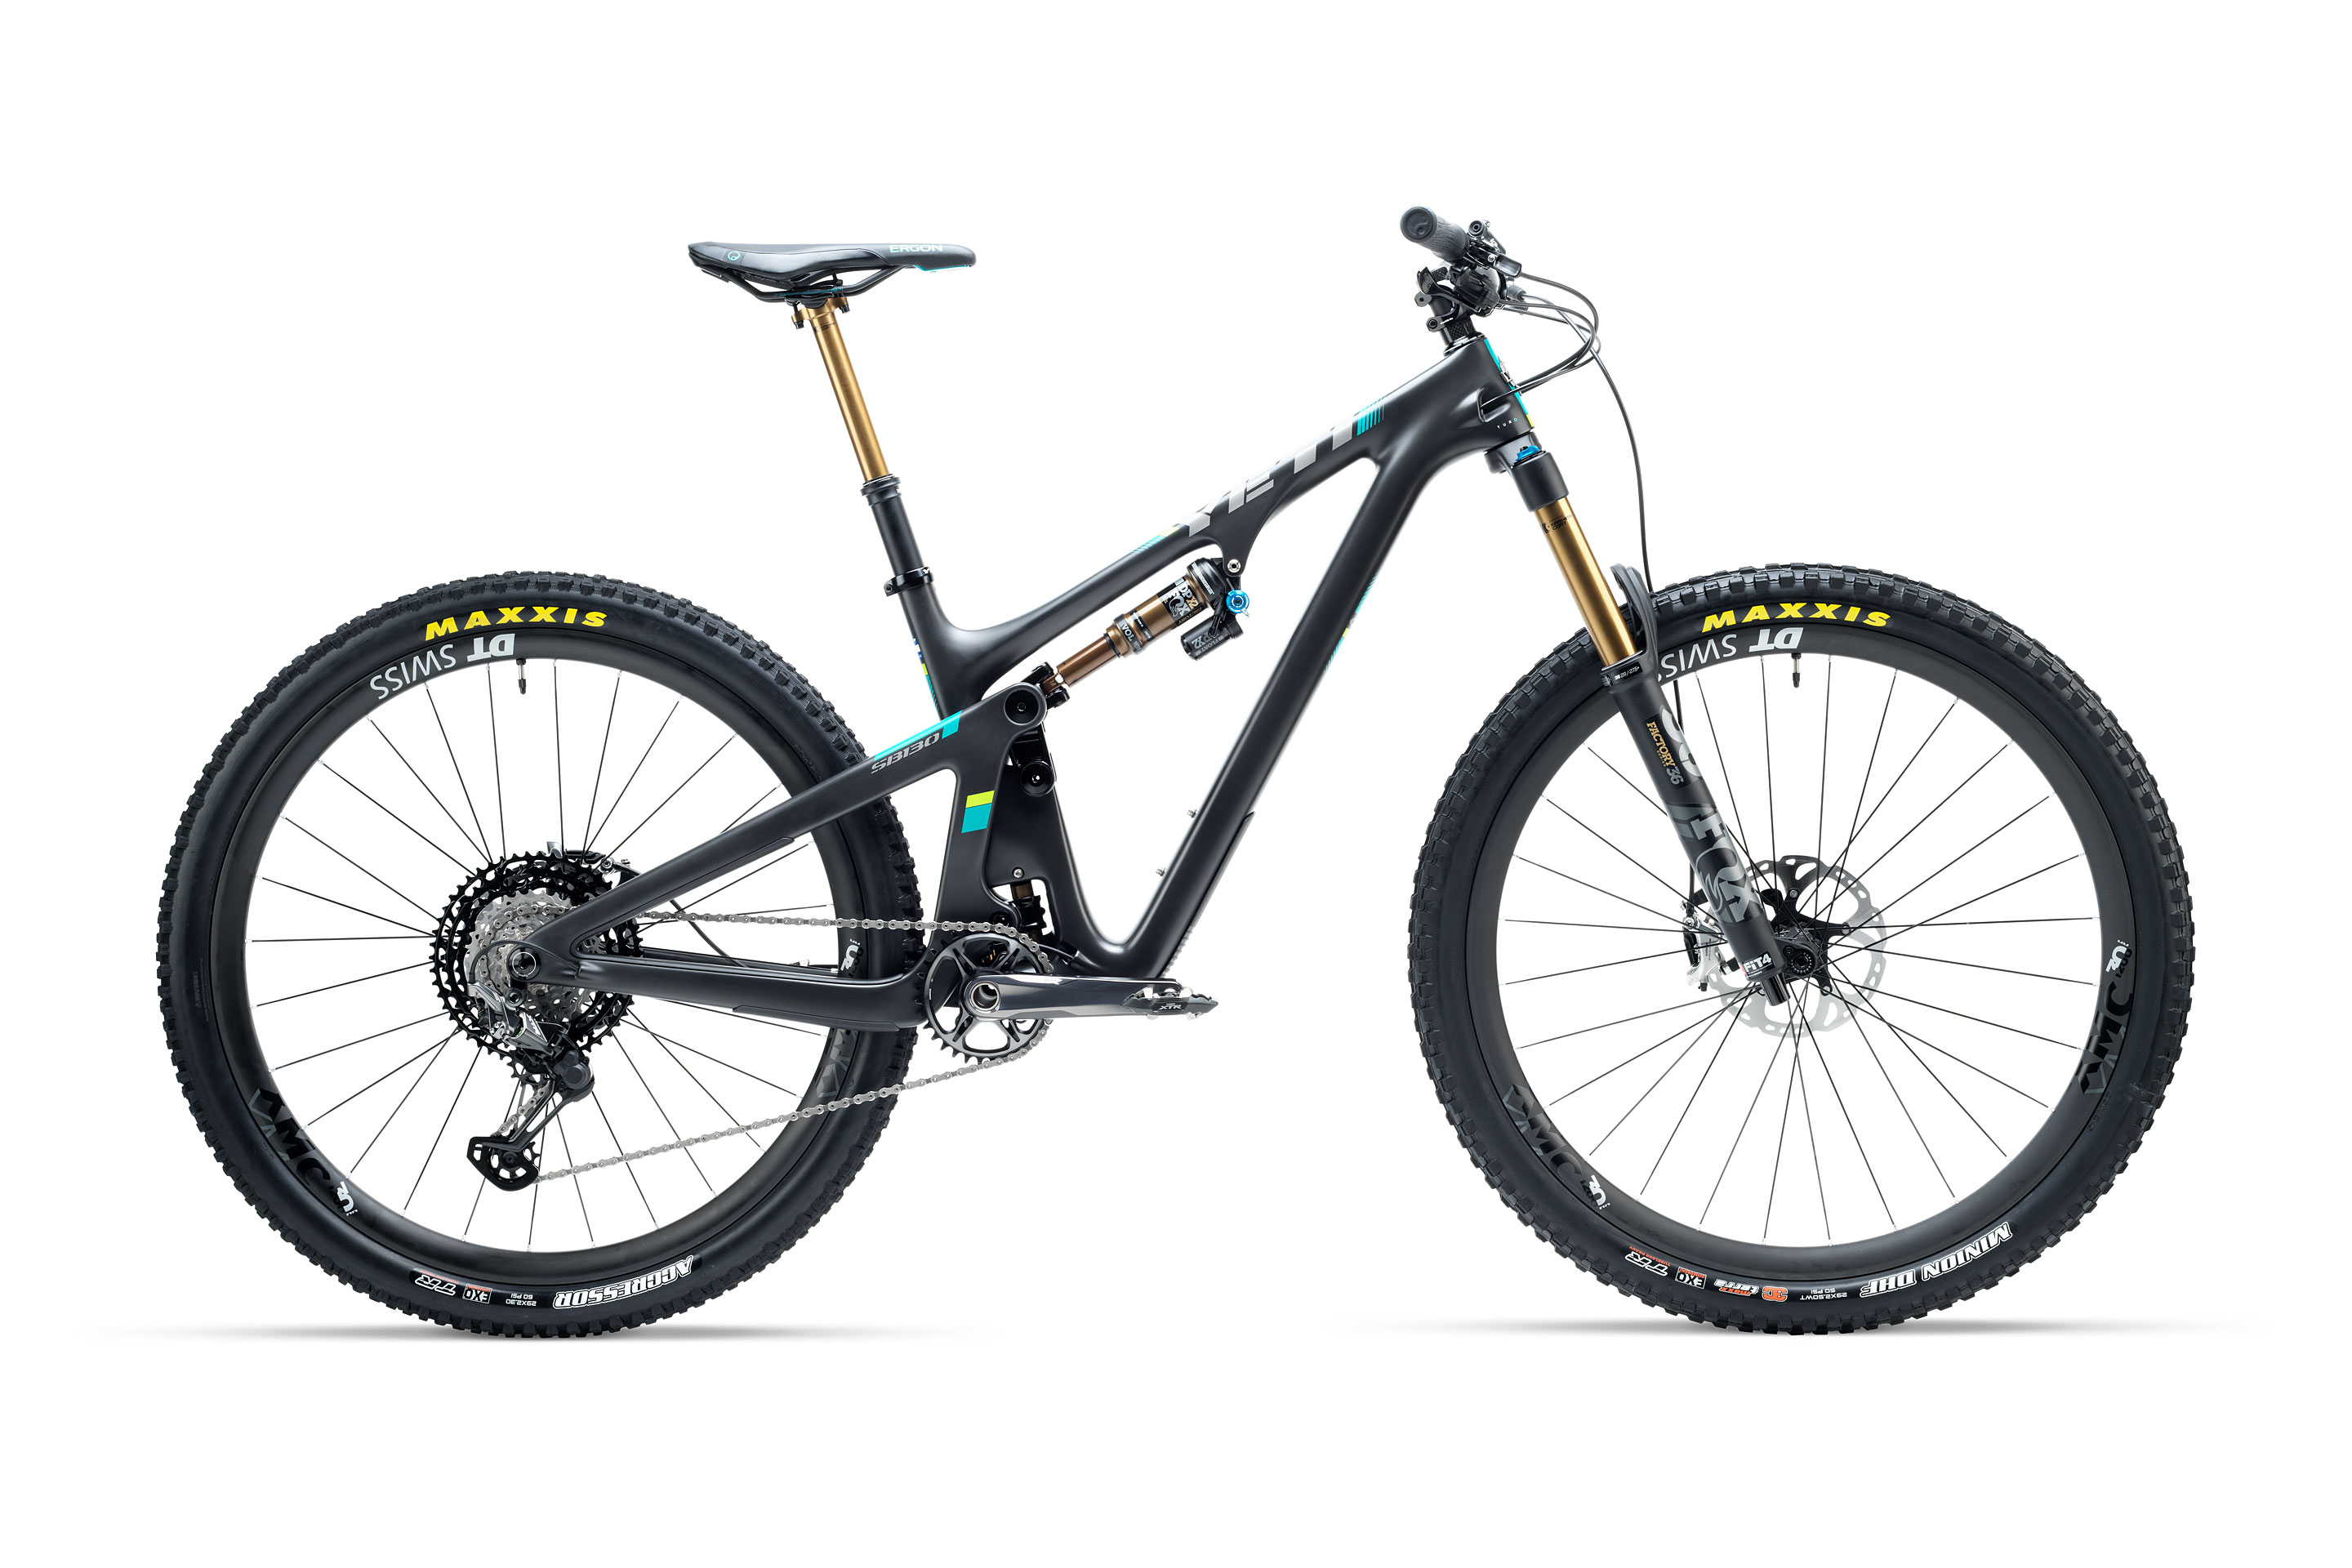 Yeti SB130 Review: Your Other Bikes Will Gather Dust